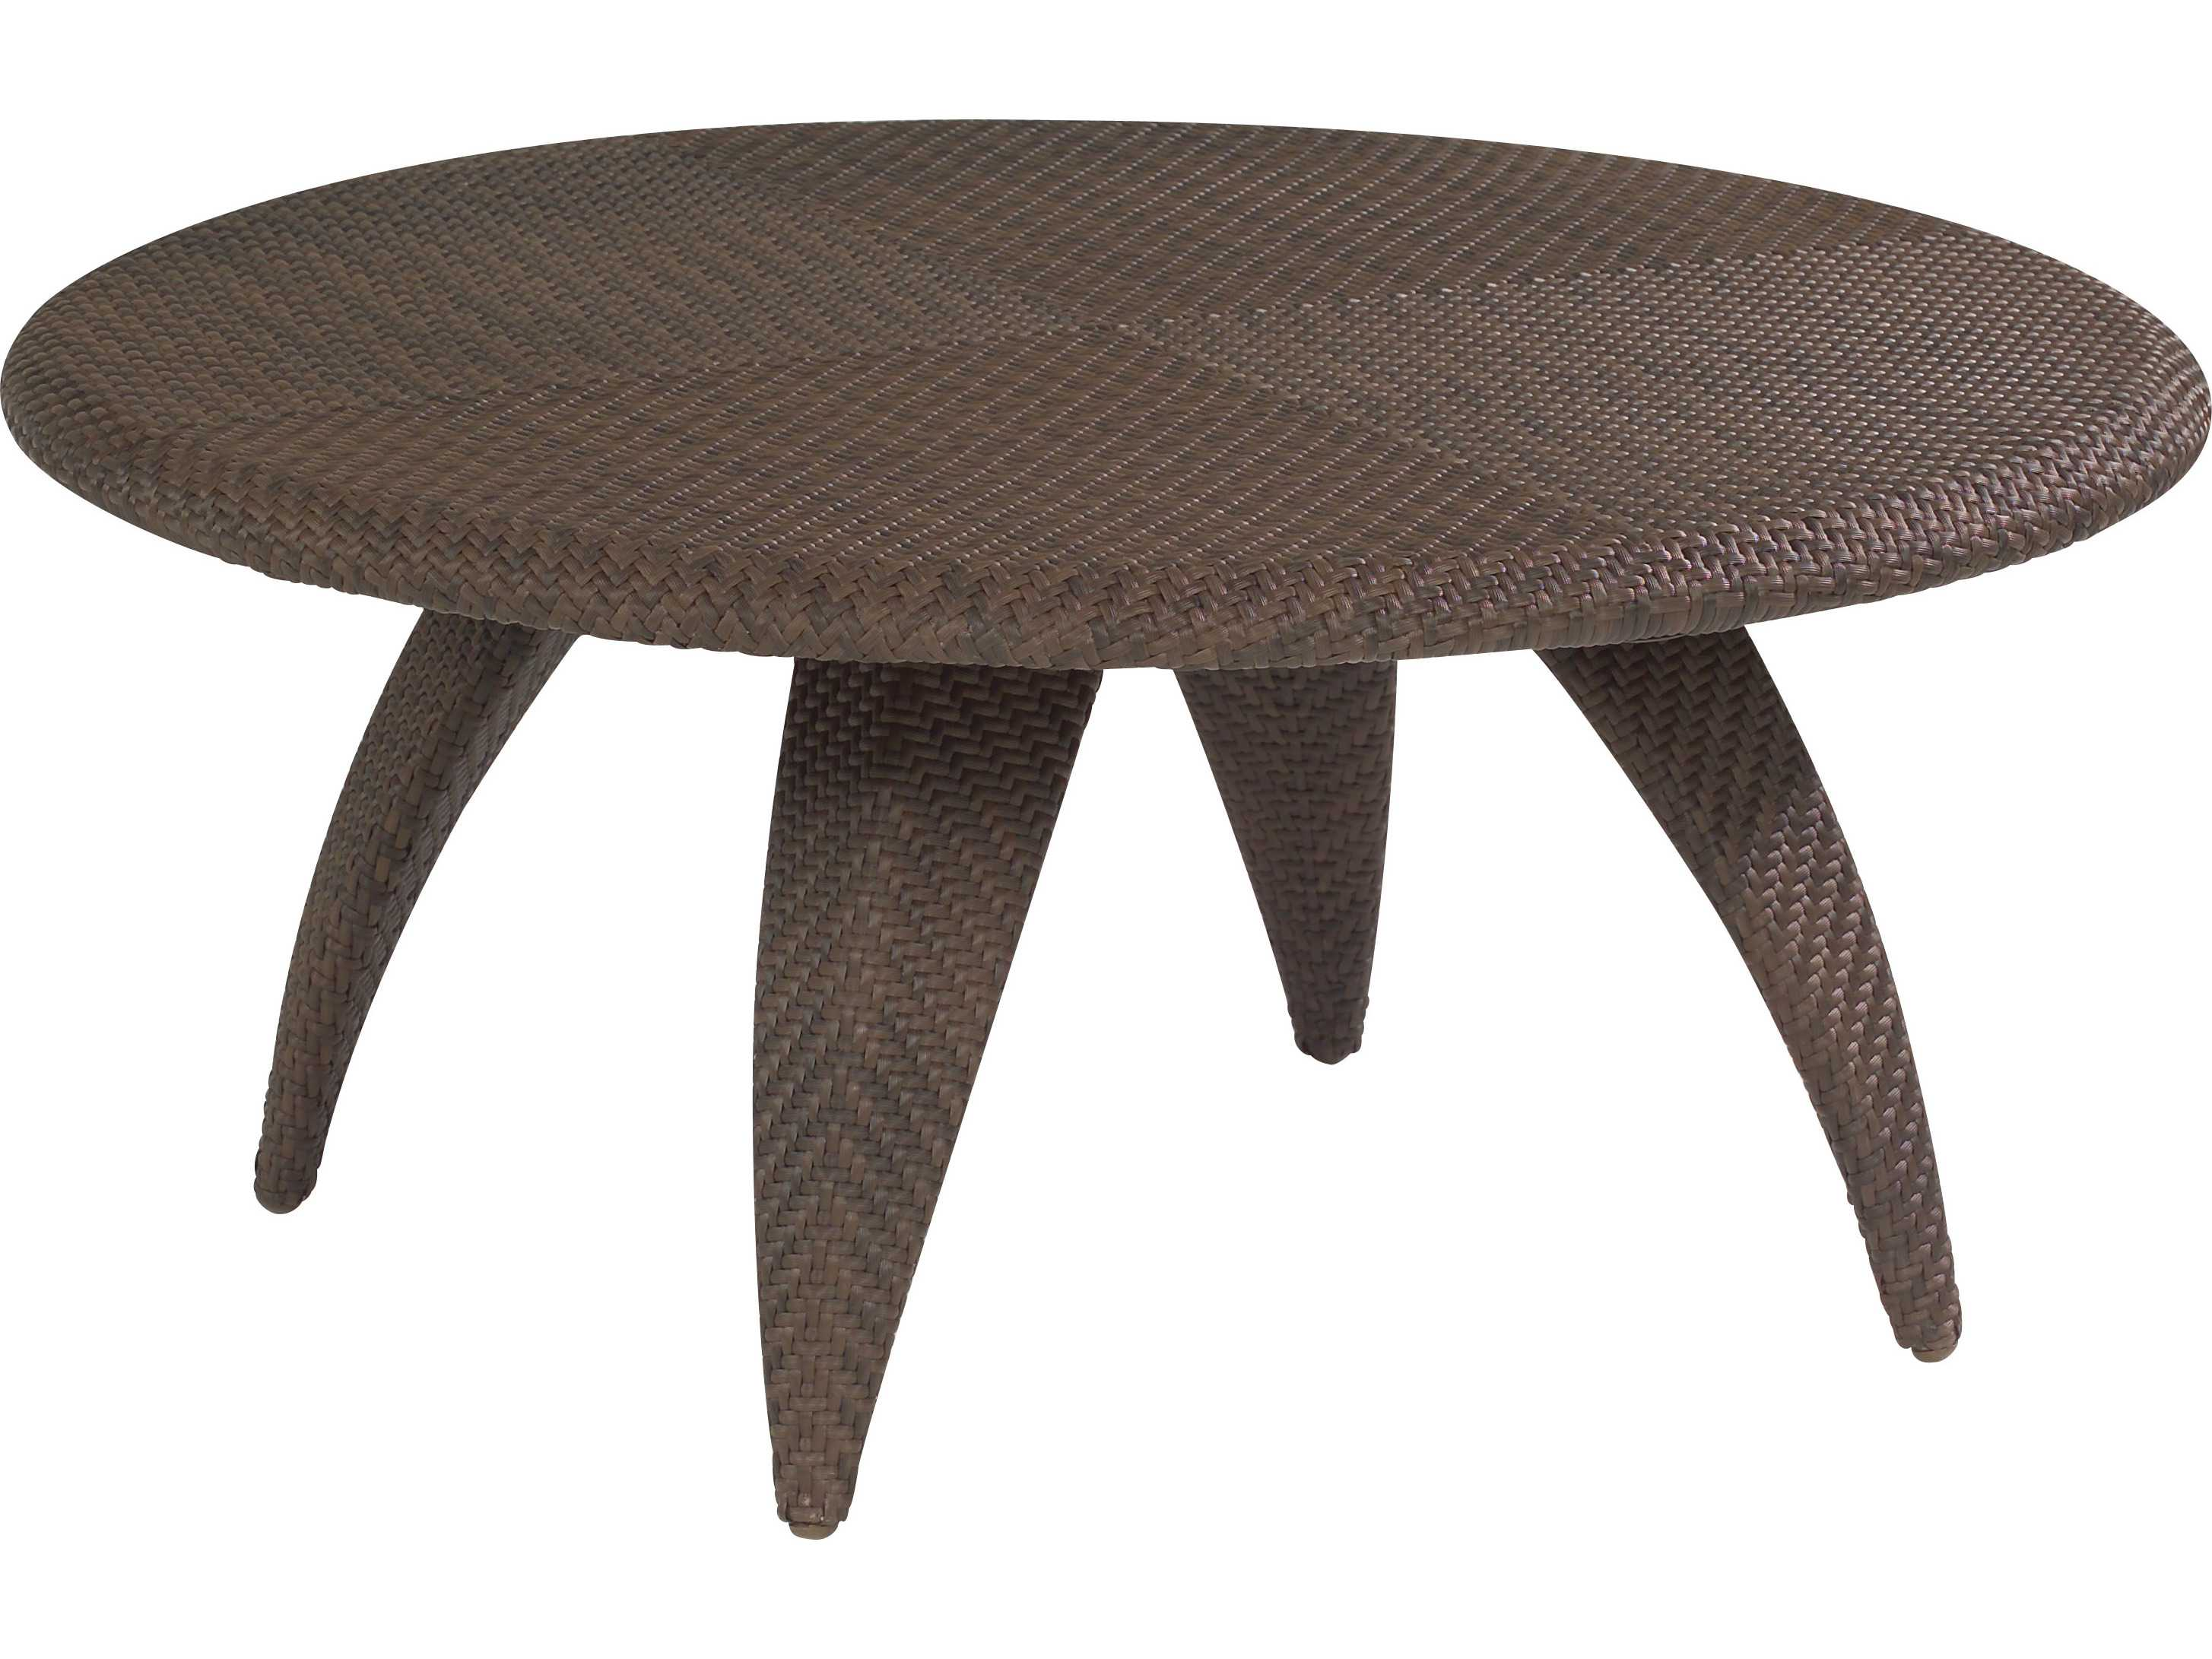 Whitecraft Bali Wicker 40 Round Coffee Table S533211